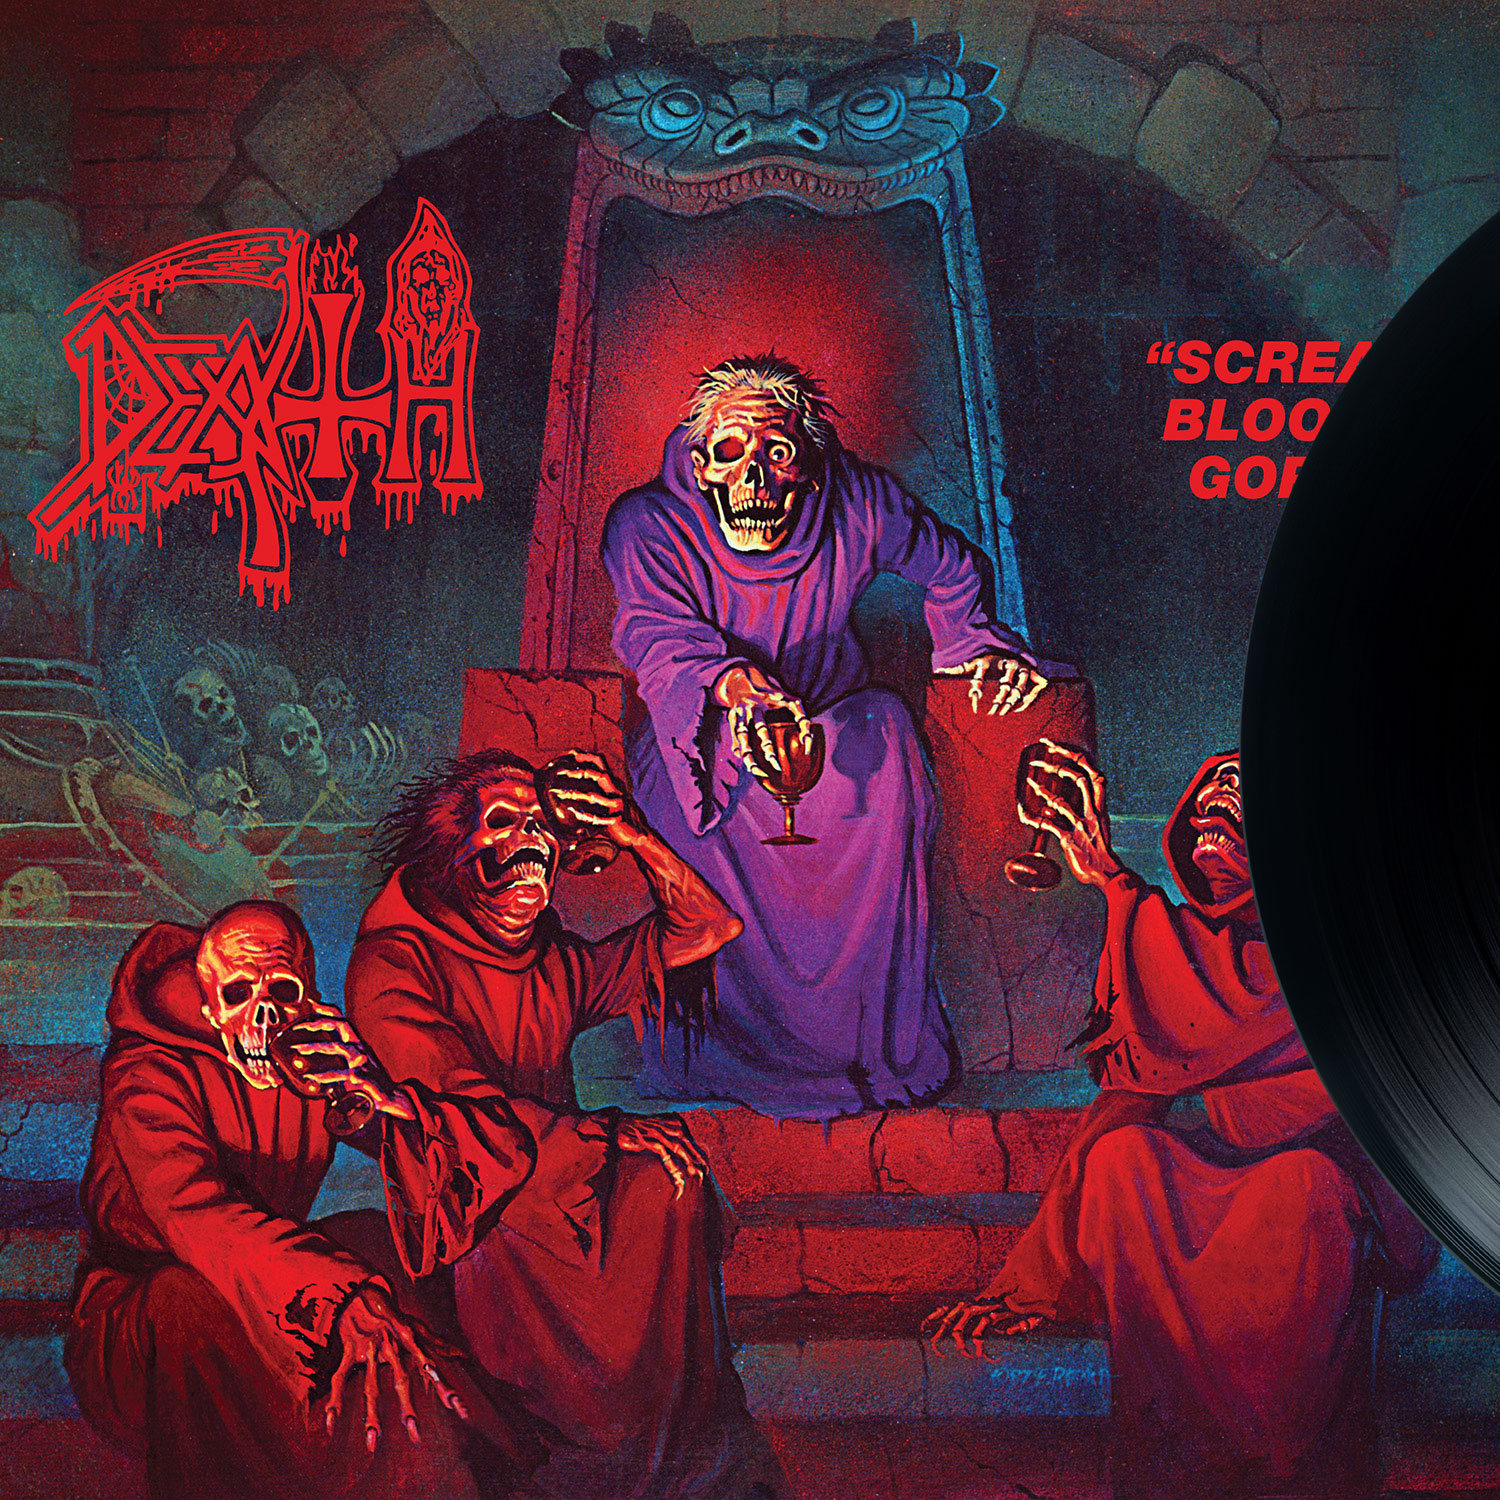 Death Quot Scream Bloody Gore Reissue Quot 12 Quot Relapse Records